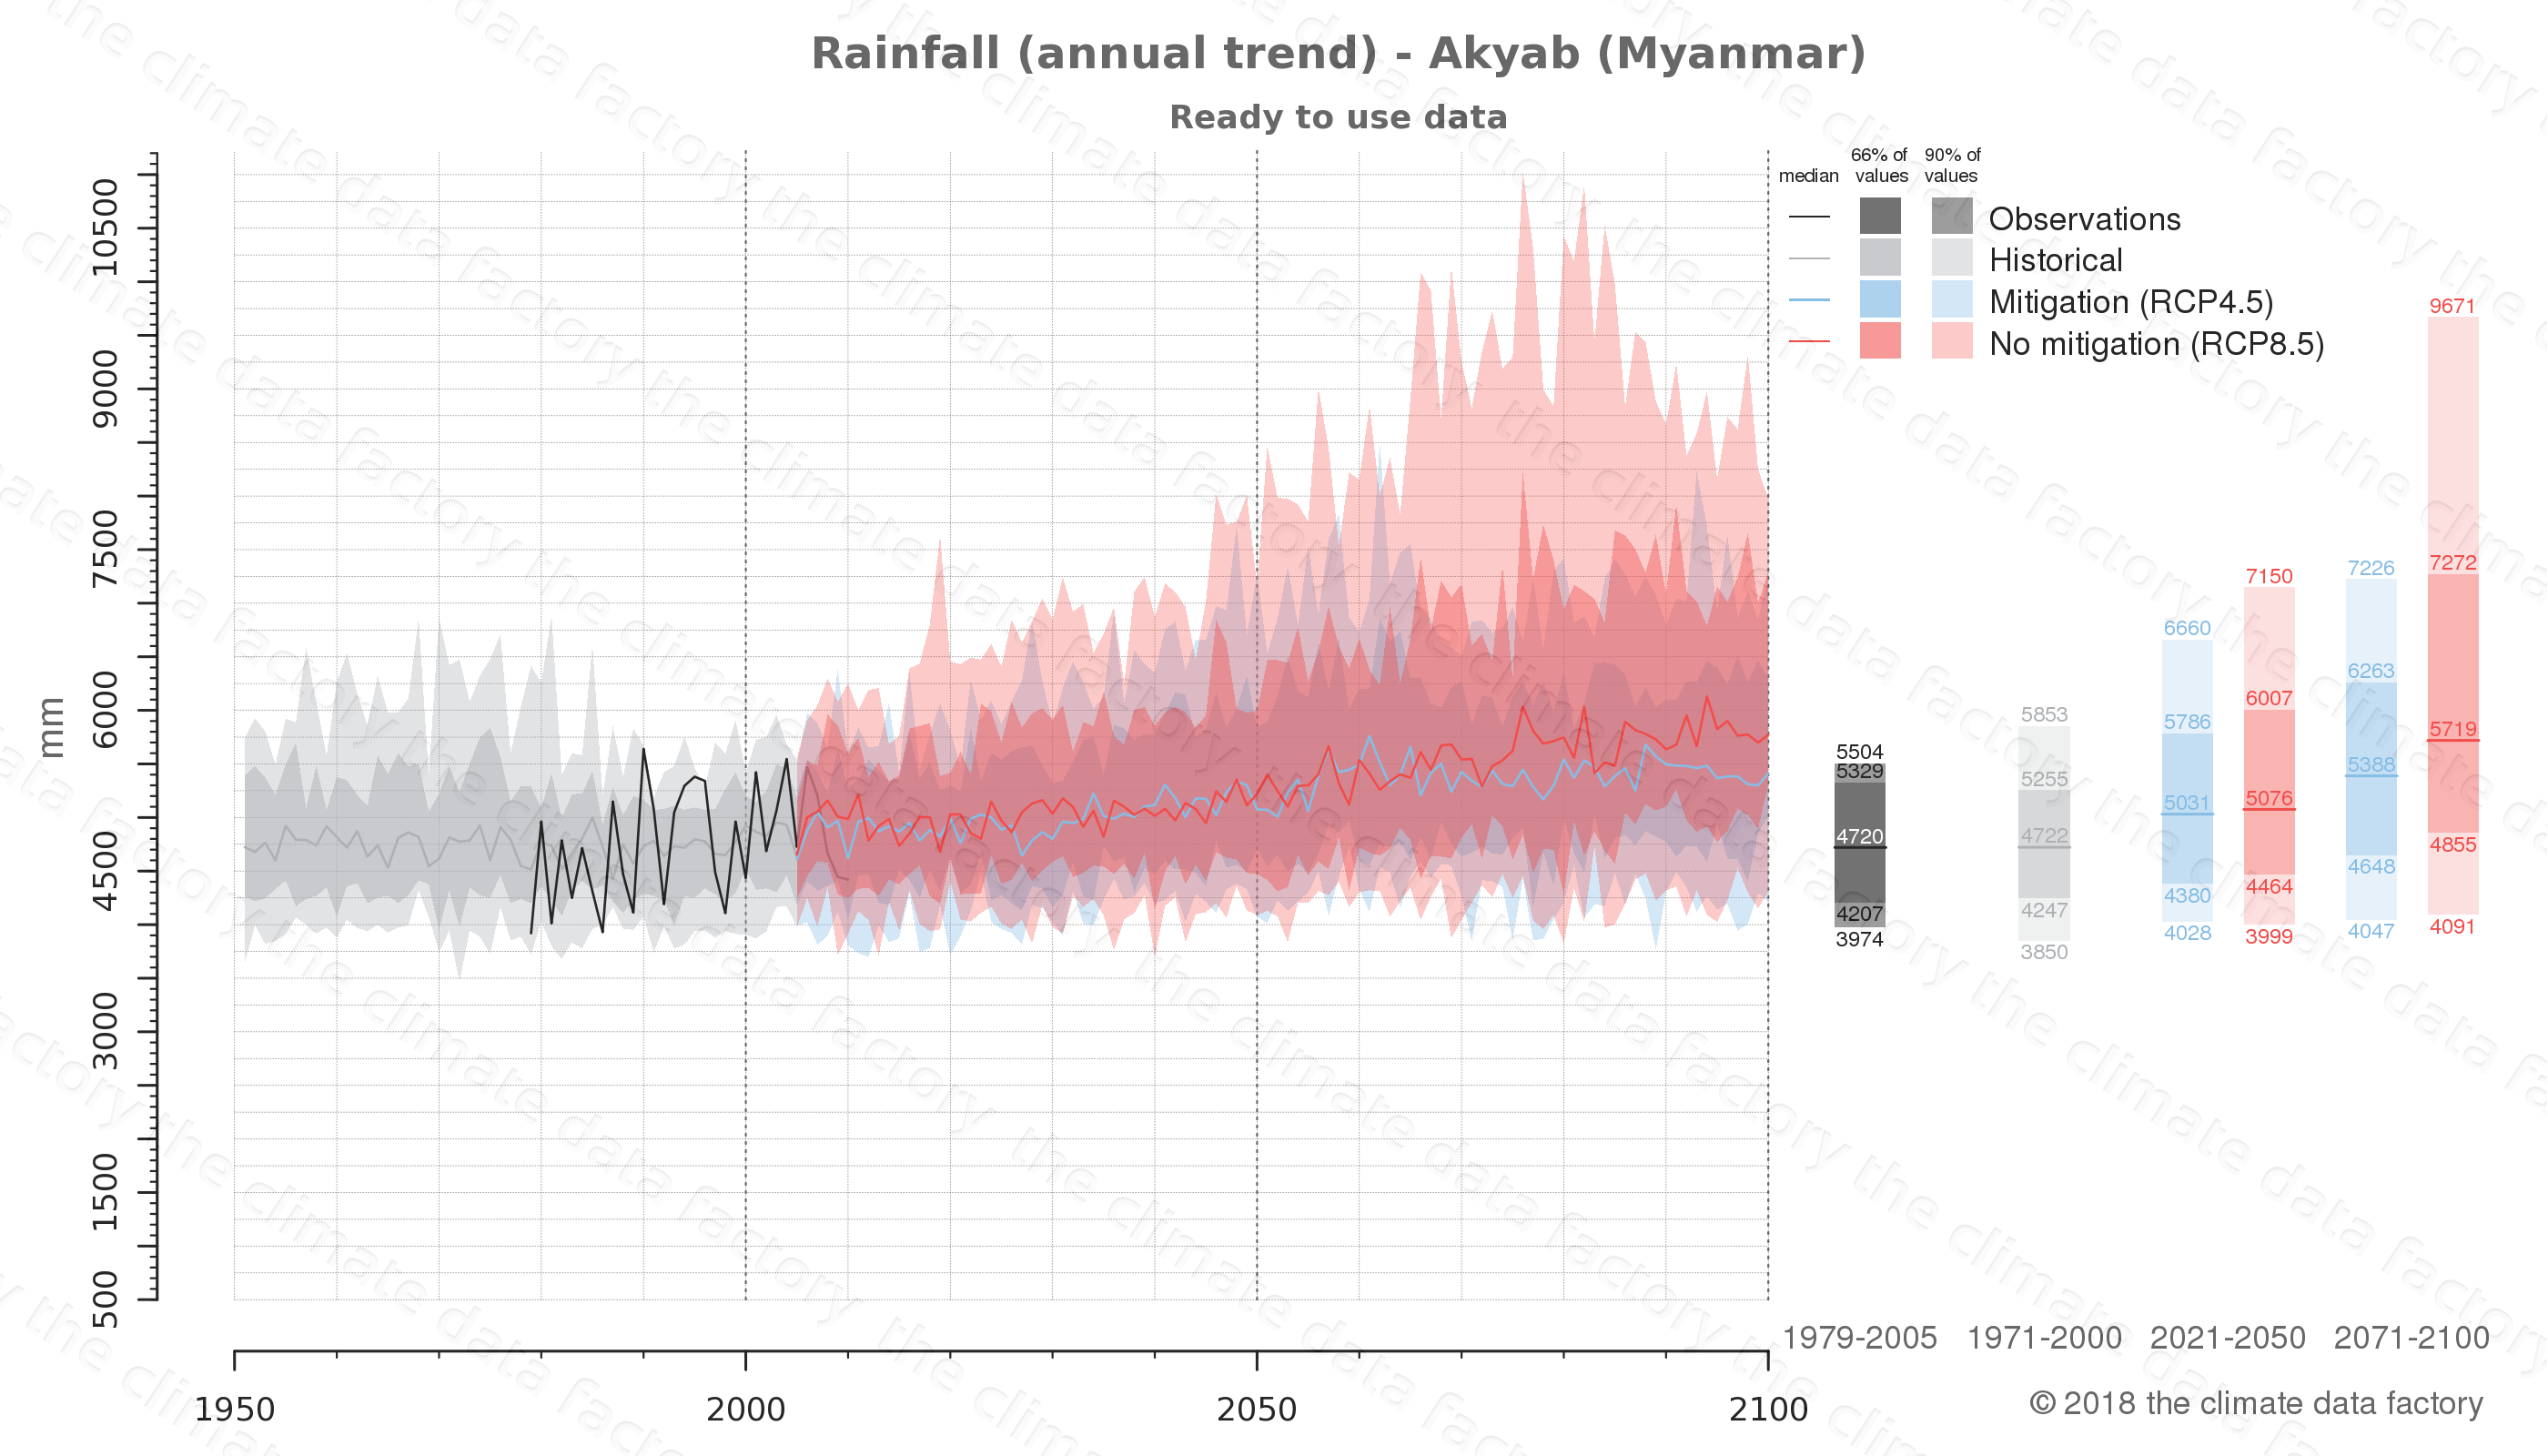 climate change data policy adaptation climate graph city data rainfall akyab myanmar